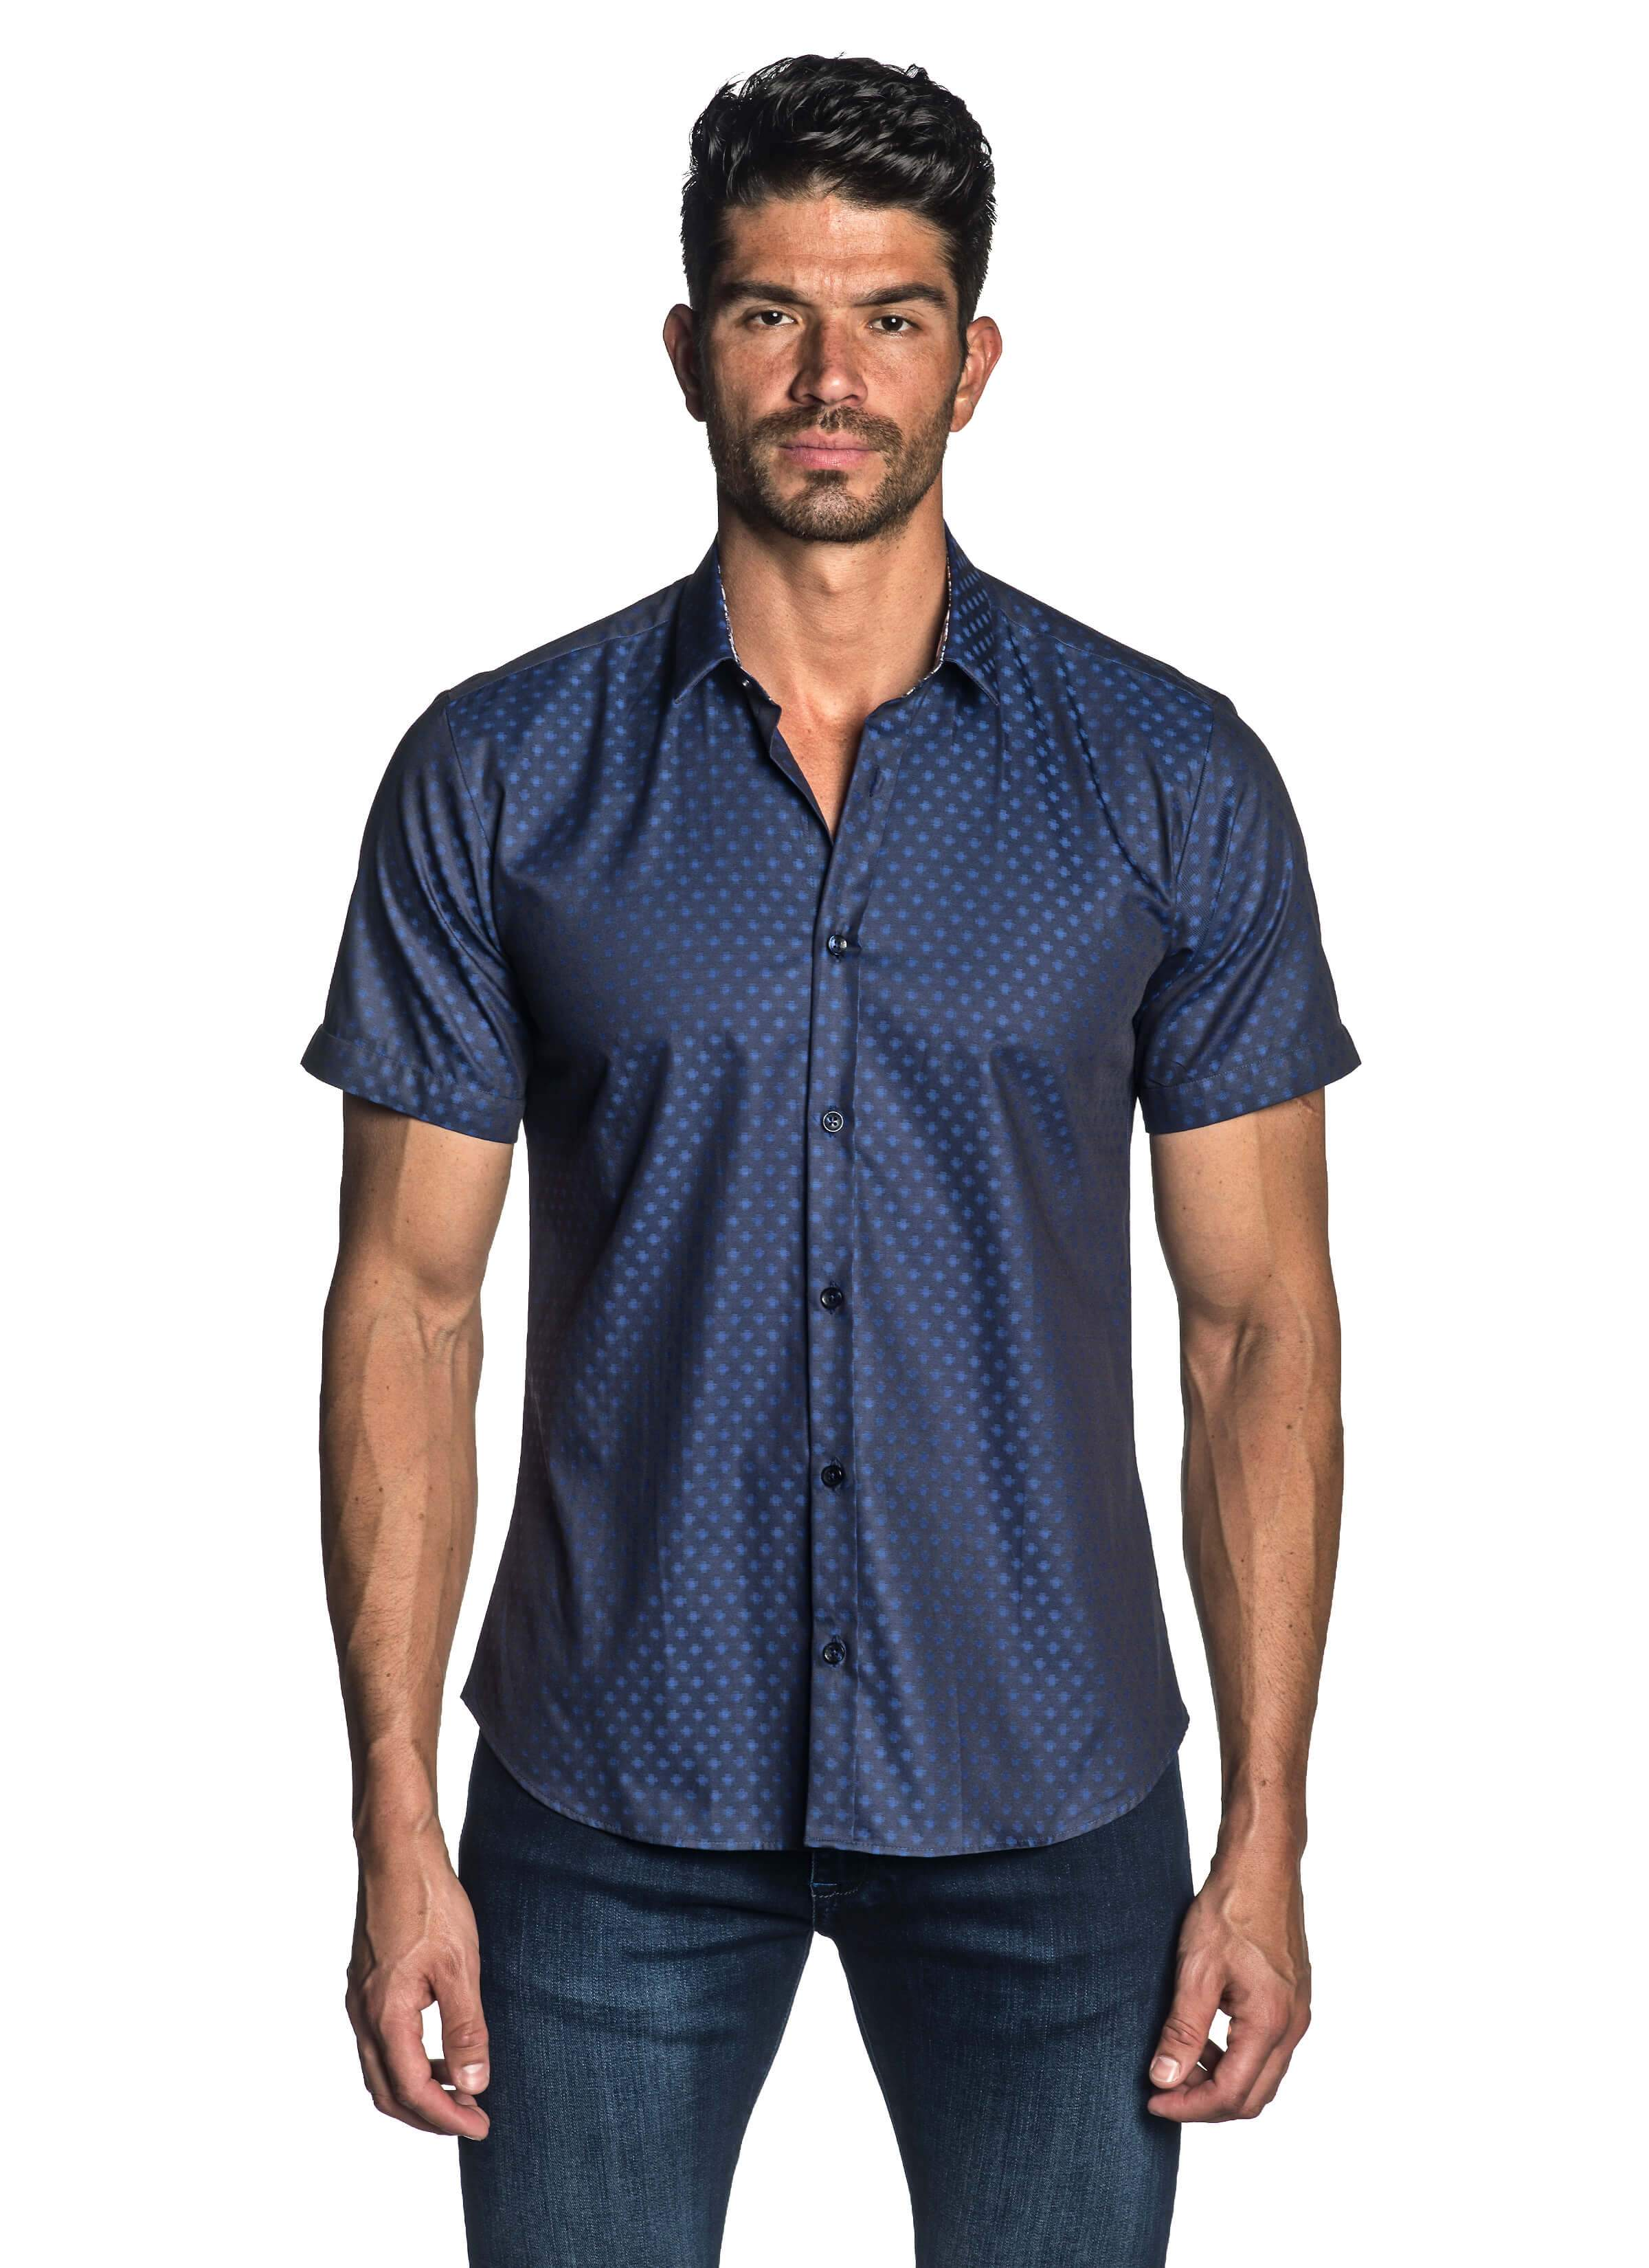 Navy Solid Jacquard Short Sleeve Shirt for Men - front AH-T-4070-SS